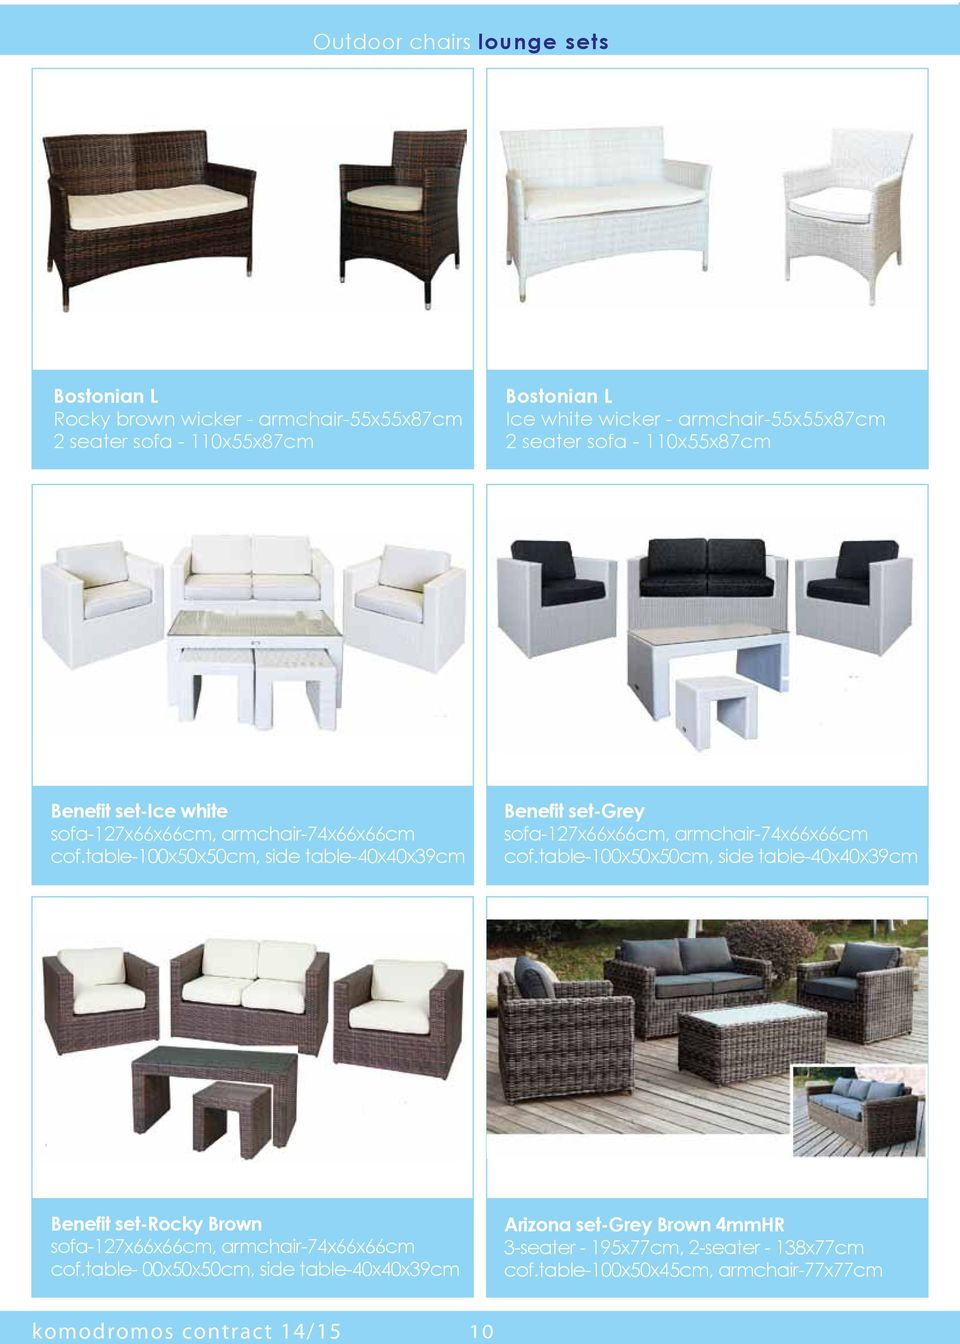 table-100x50x50cm, side table-40x40x39cm Benefit set-grey sofa-127x66x66cm, armchair-74x66x66cm cof.